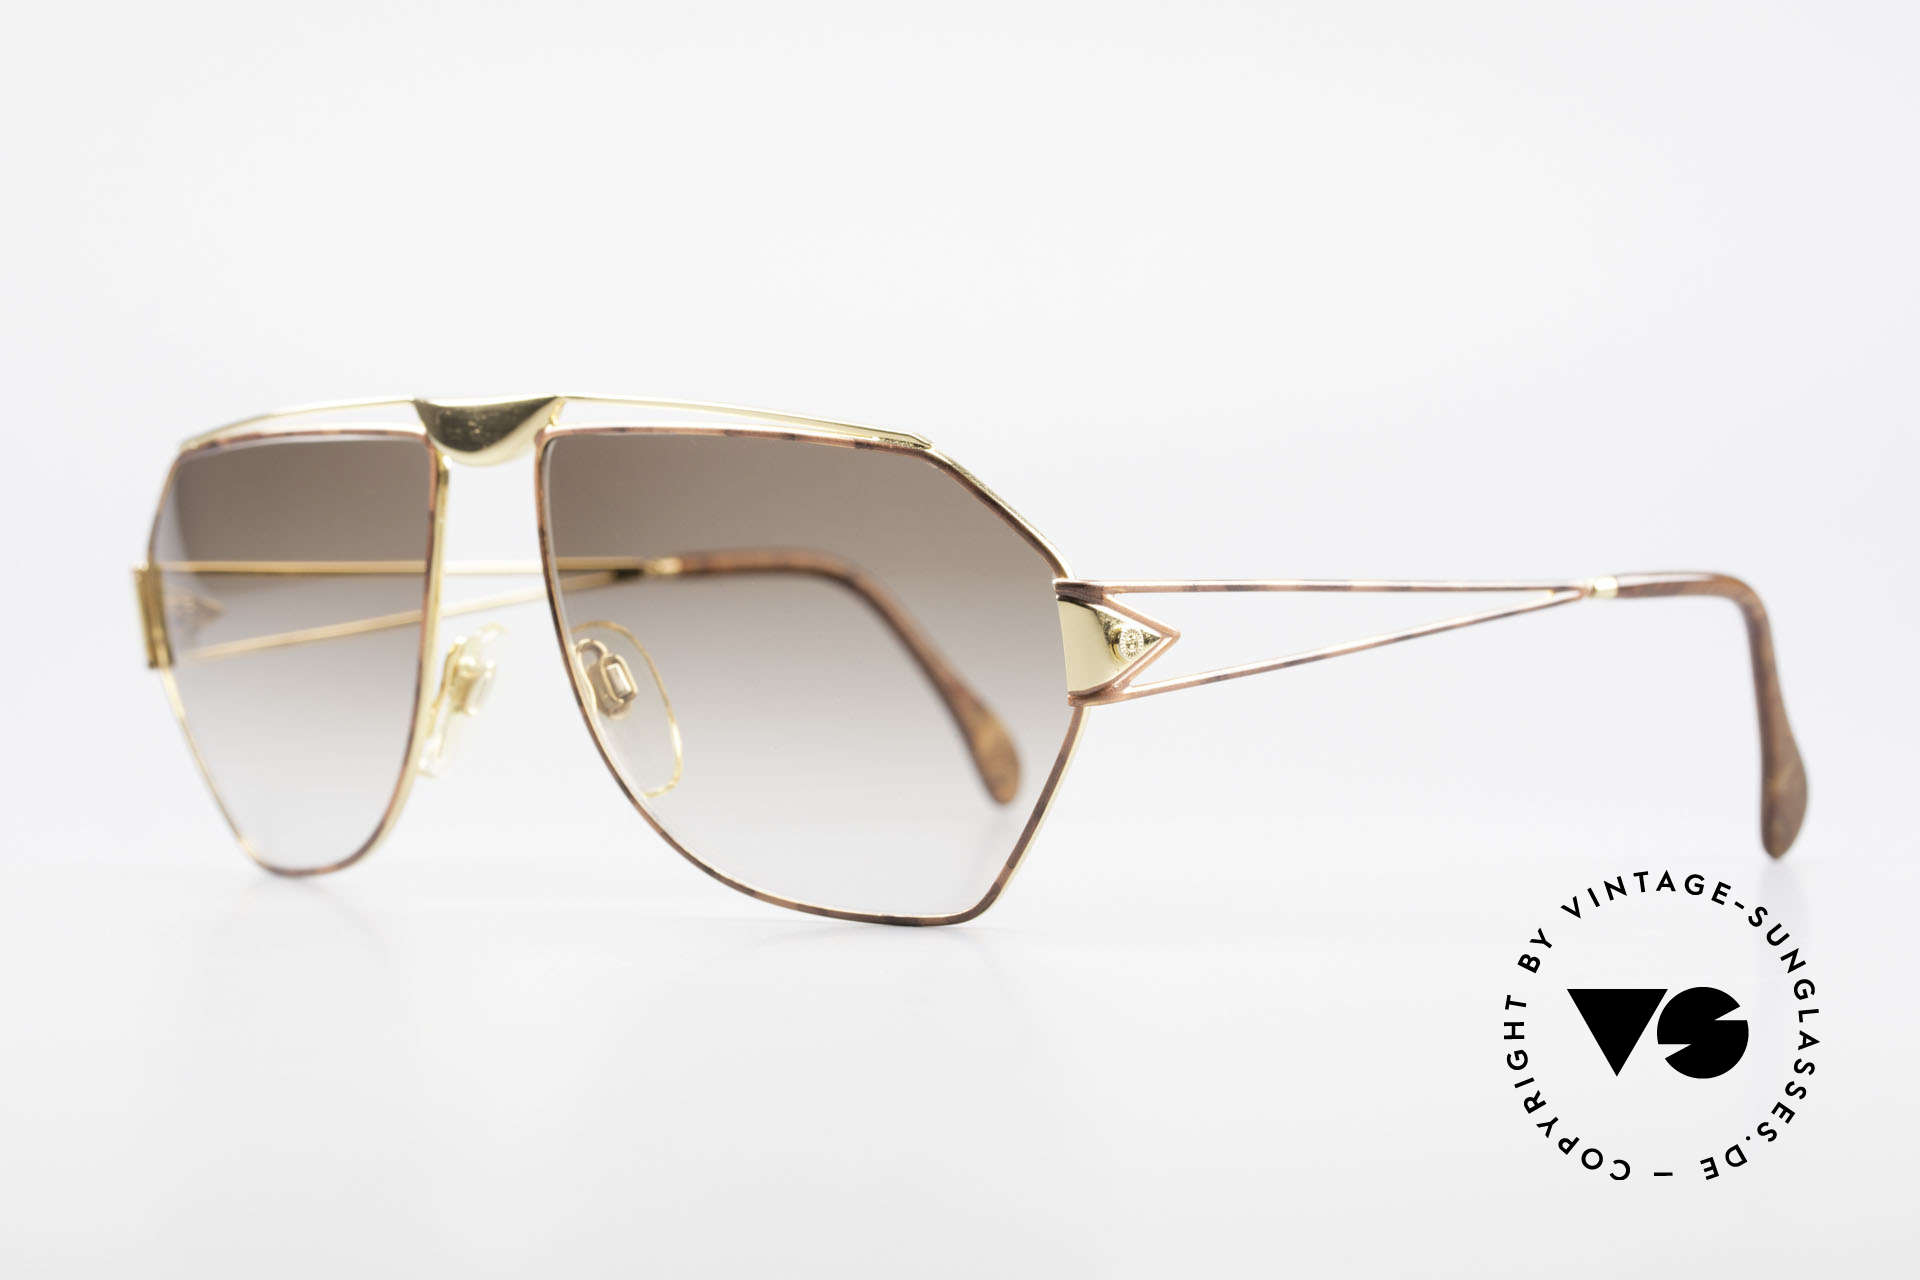 St. Moritz 403 Rare 80's Jupiter Sunglasses, 80's limited-lot production (every frame is numbered), Made for Men